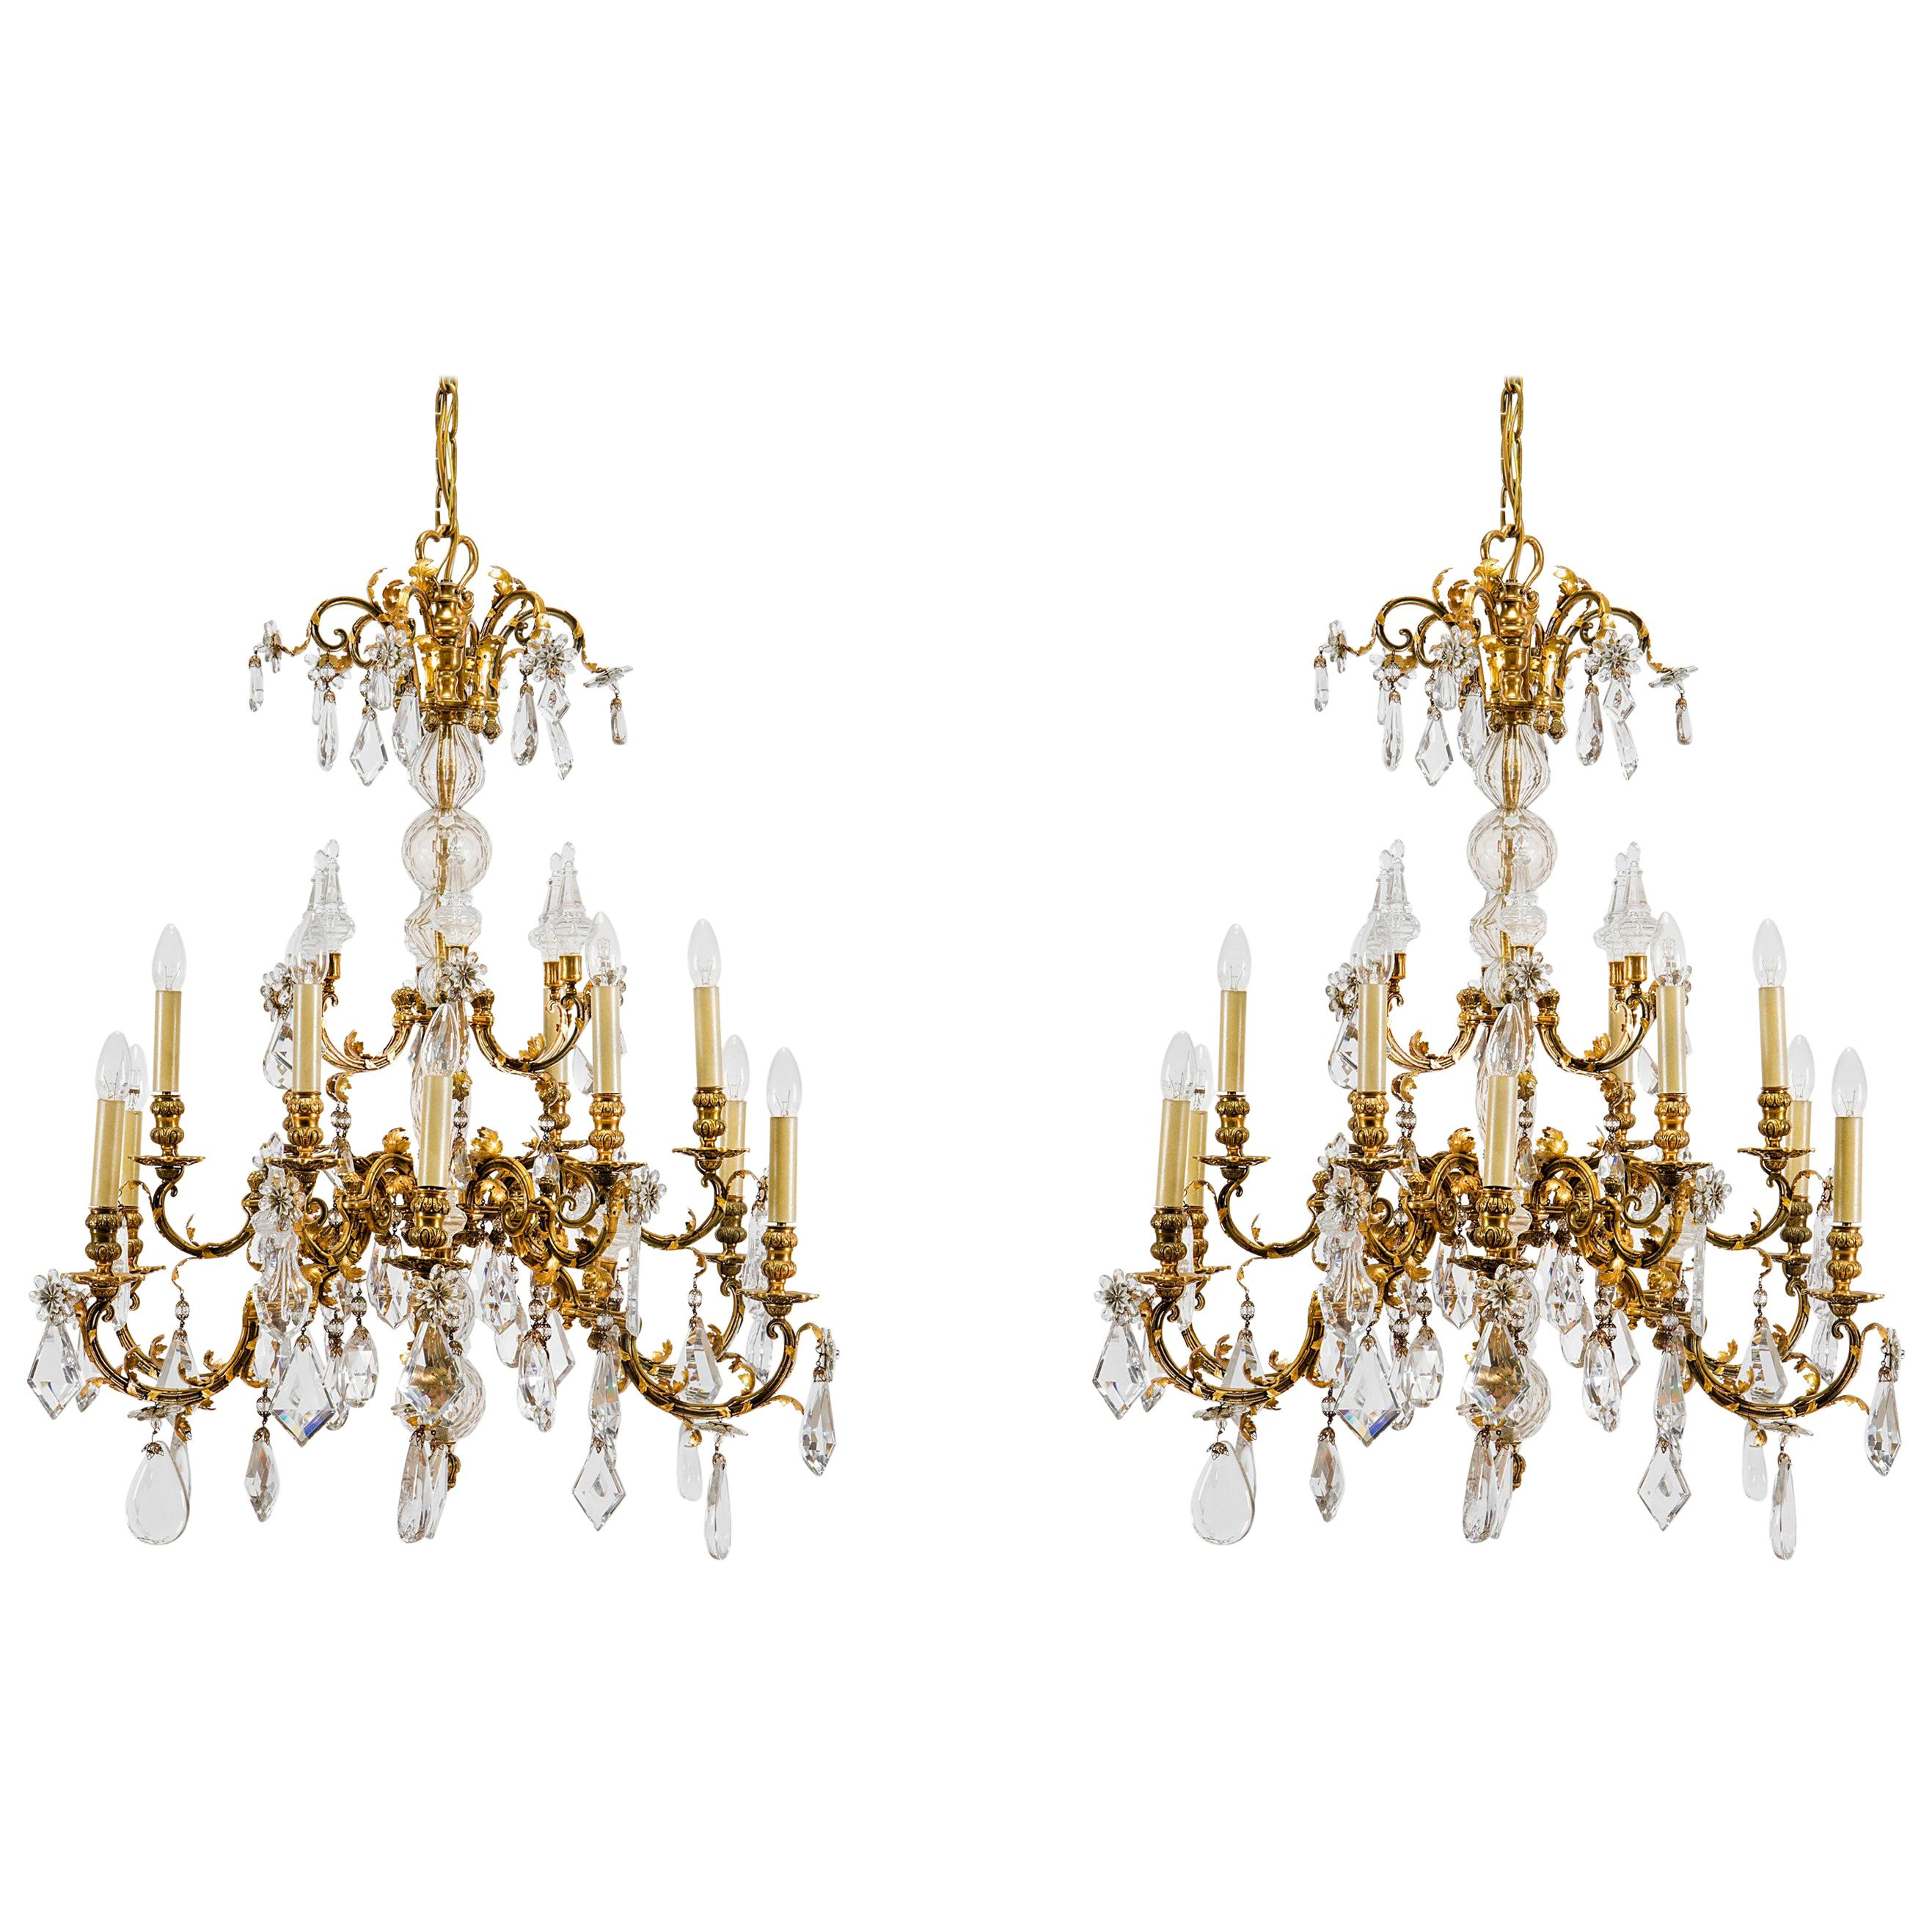 20th Century, Pair of French Crystal Gilt Bronze Chandeliers by Maison Baguès